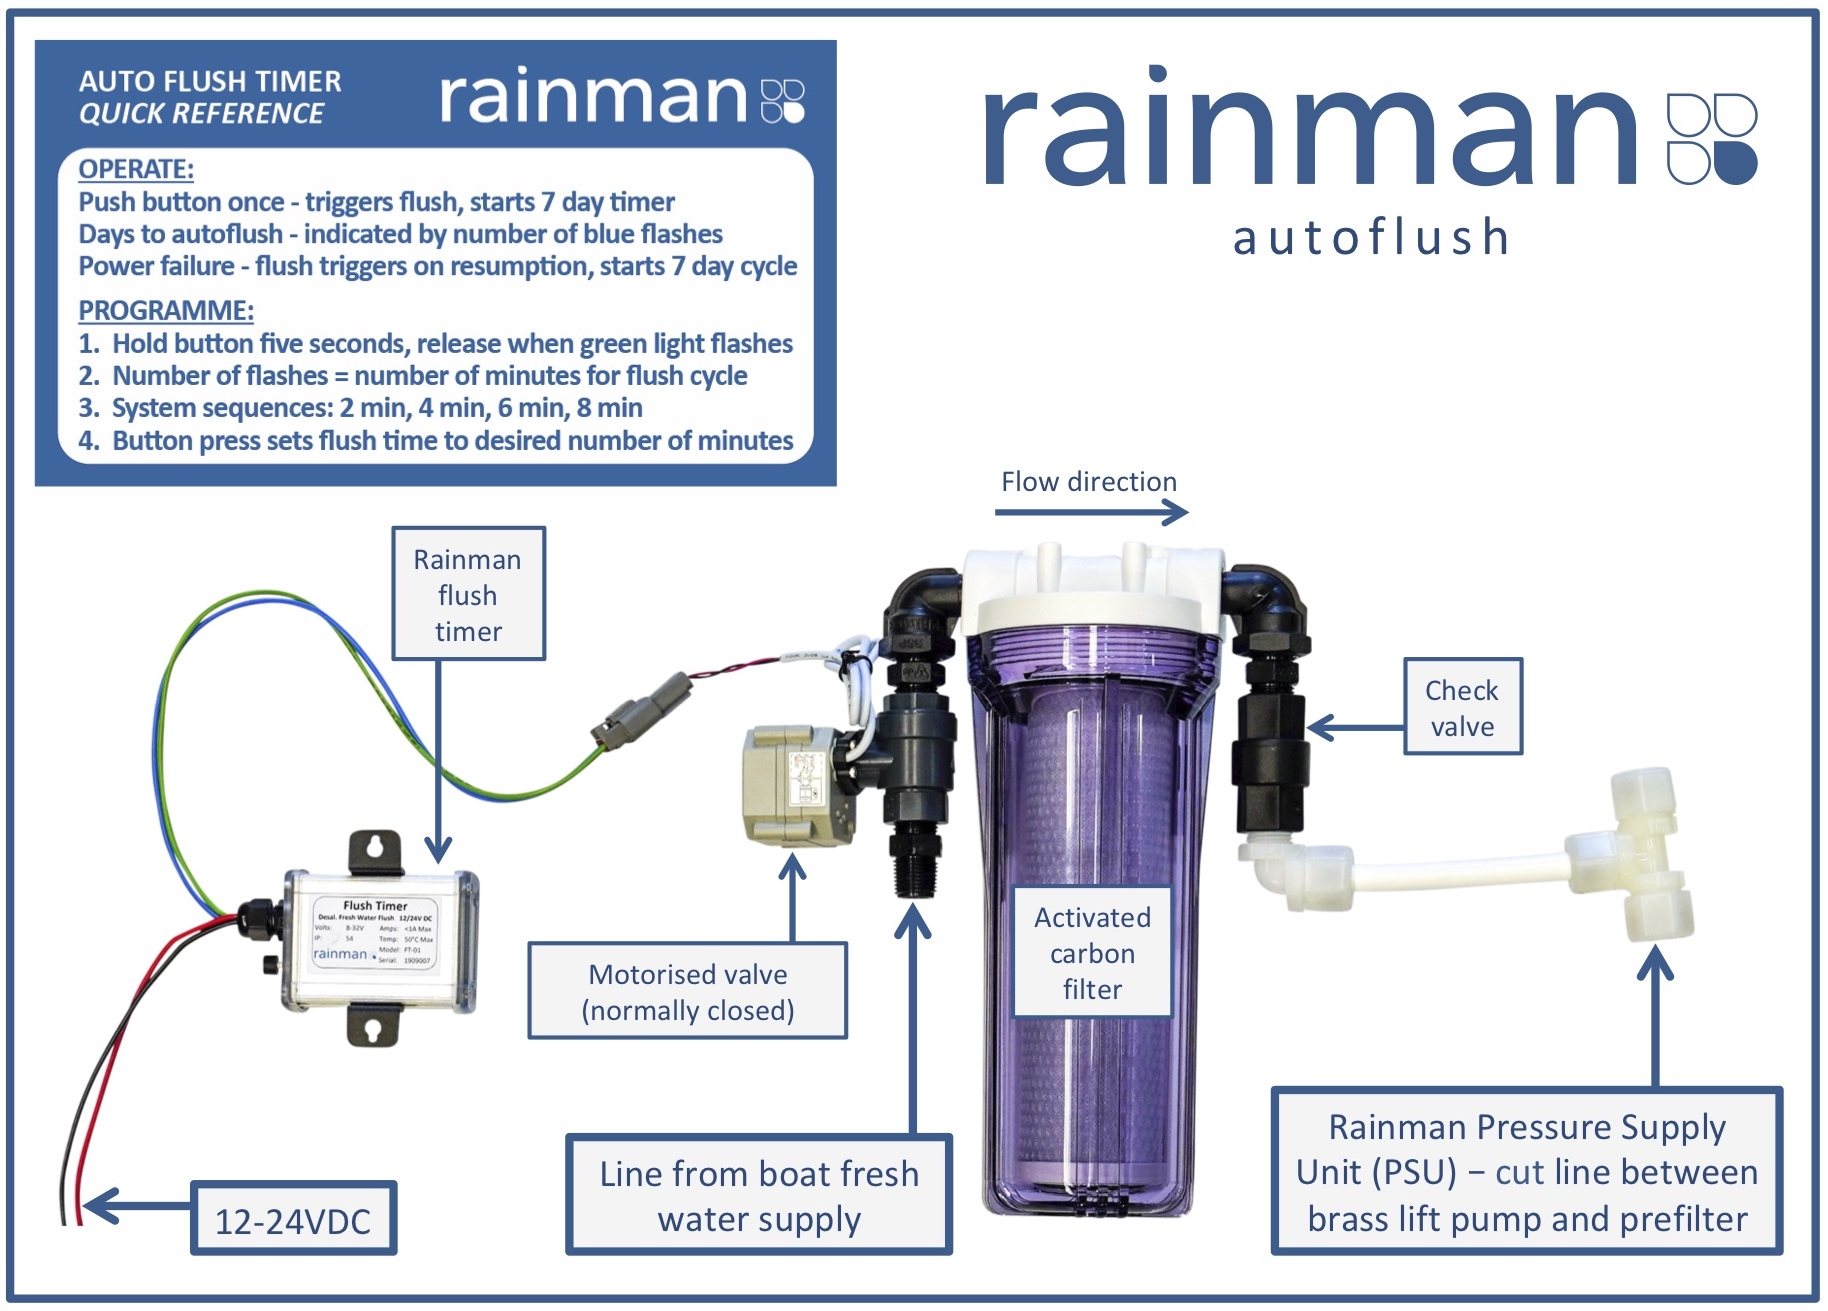 Rainman Autoflush System